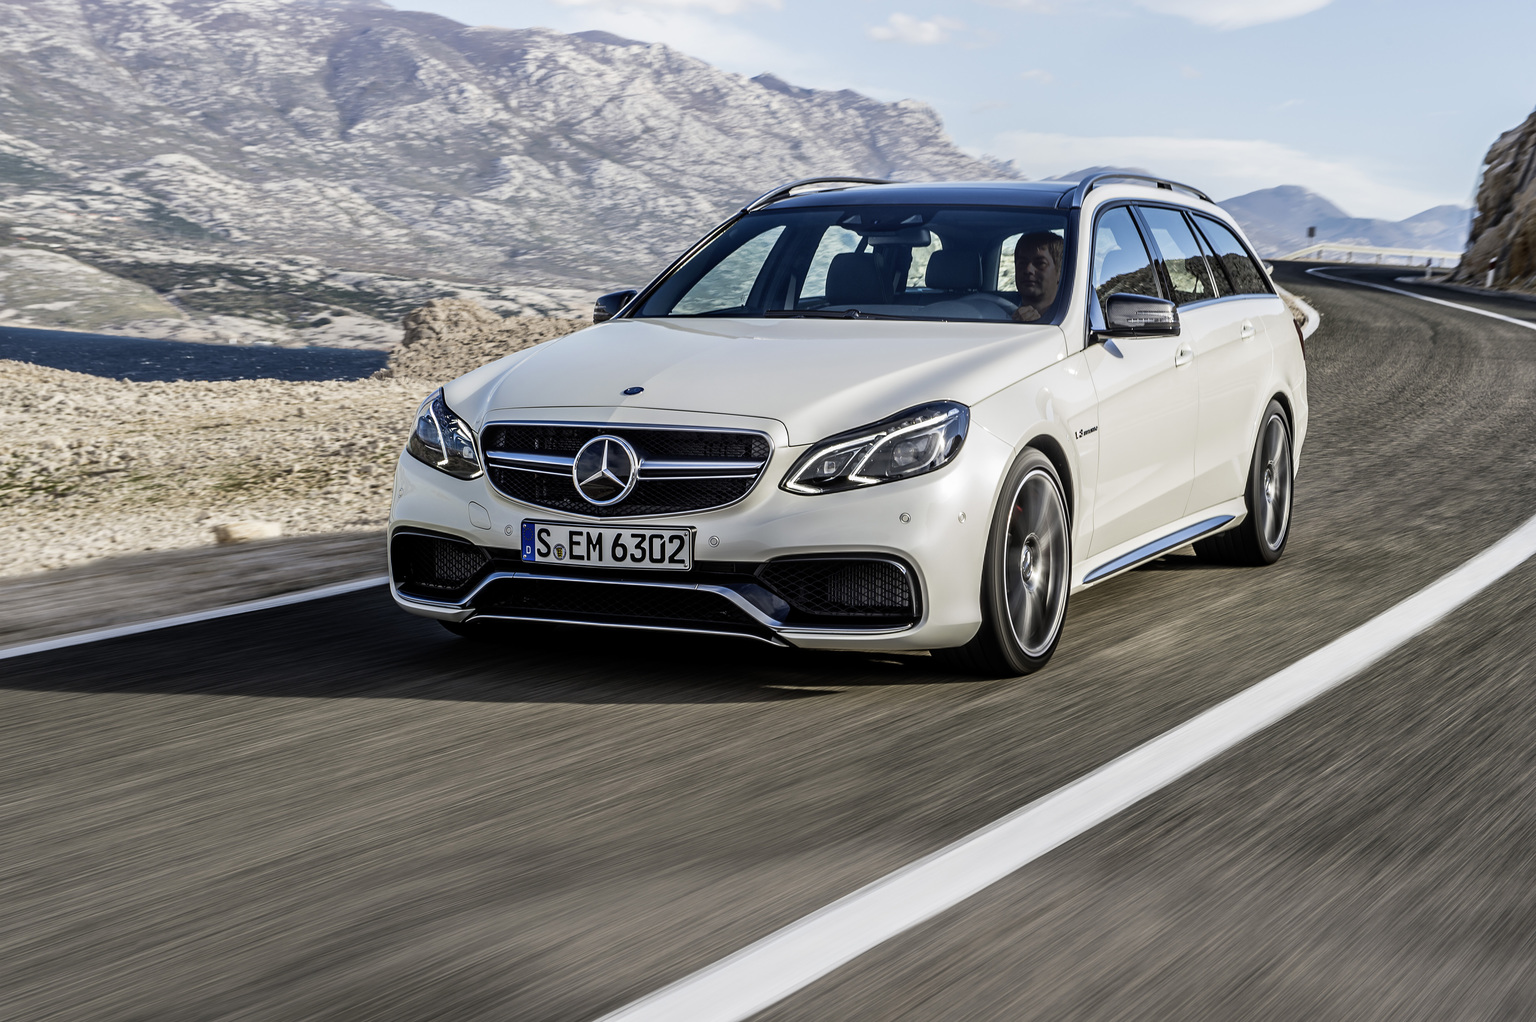 2013 Mercedes-Benz E 63 AMG Estate